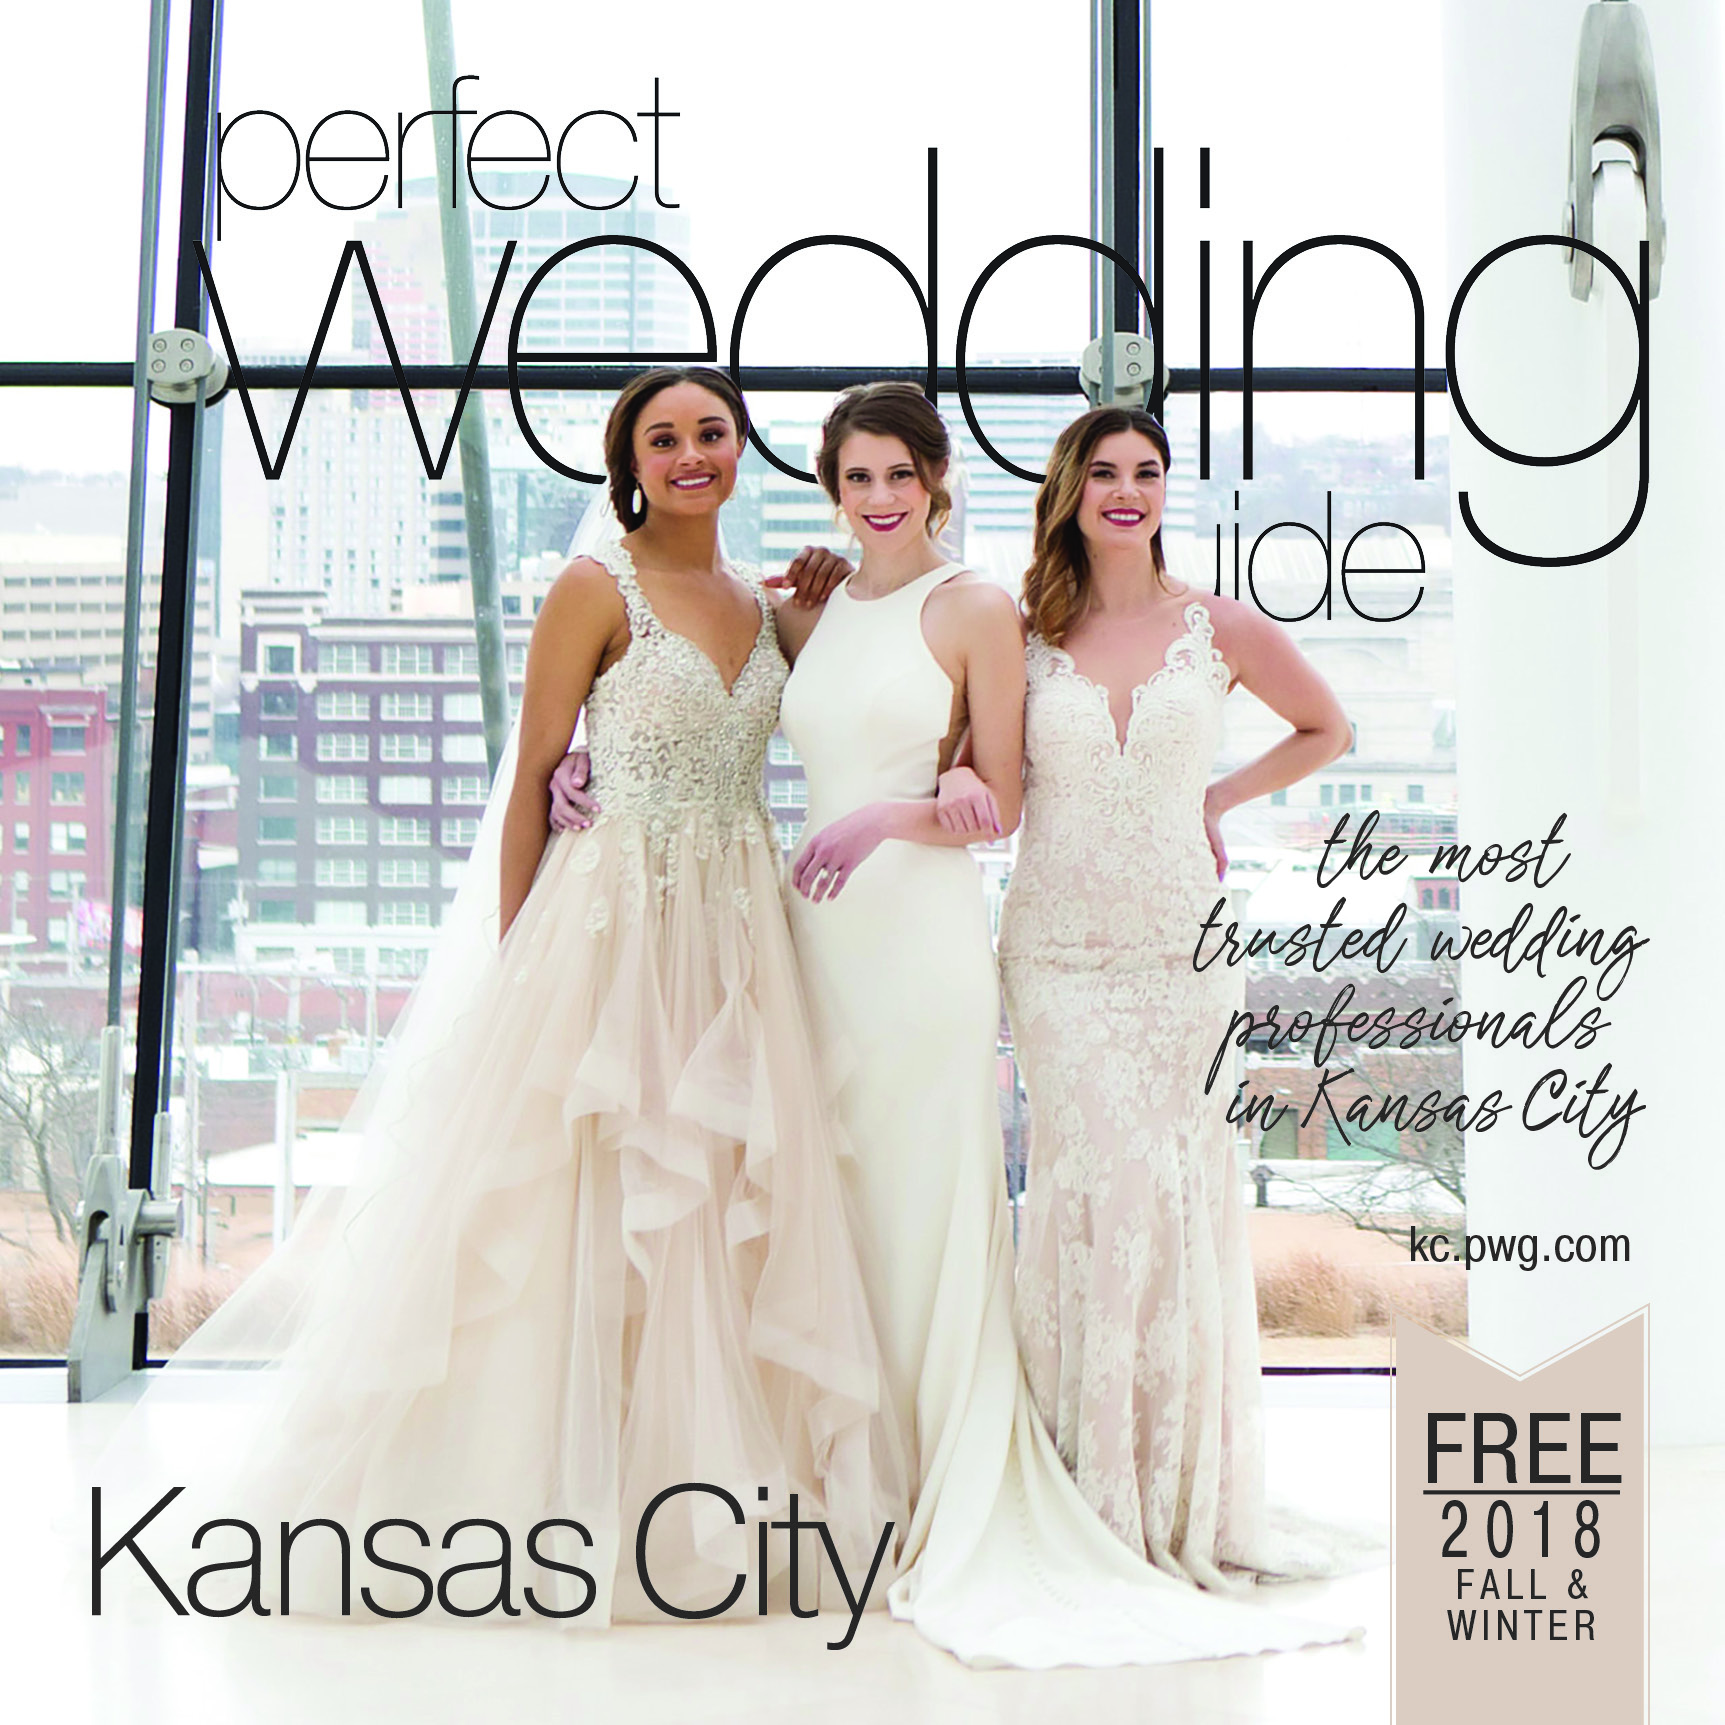 FALL-WINTER 2018 ISSUE KANSAS CITY PERFECT WEDDING GUIDE CREATIVE DIRECTOR